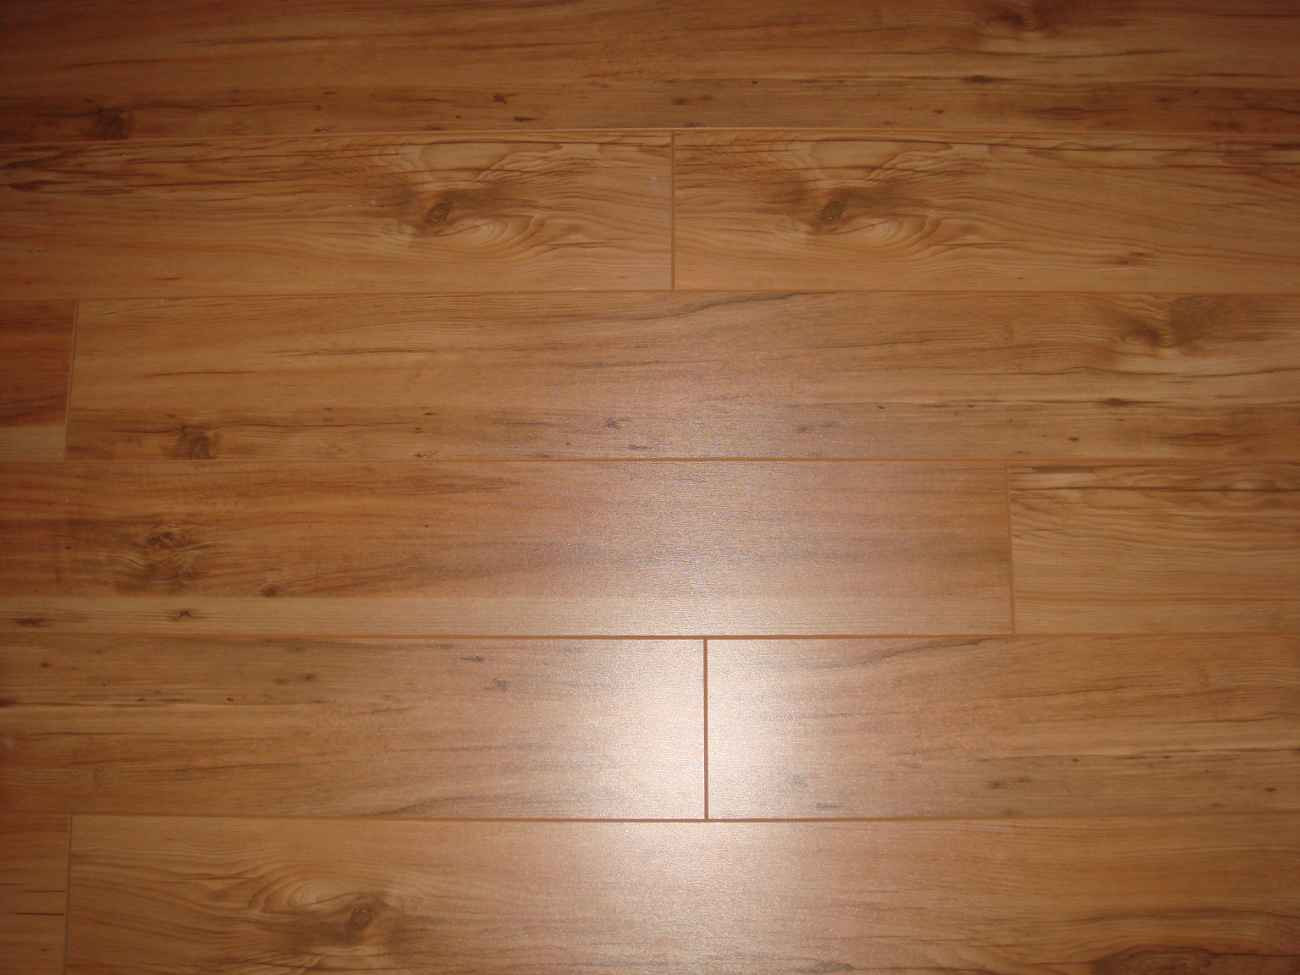 price to install hardwood floors home depot of 45 wood ceramic tile home depot restoration beauty faux wood tile within 45 wood ceramic tile home depot restoration beauty faux wood tile flooring in the kitchen loonaonline com